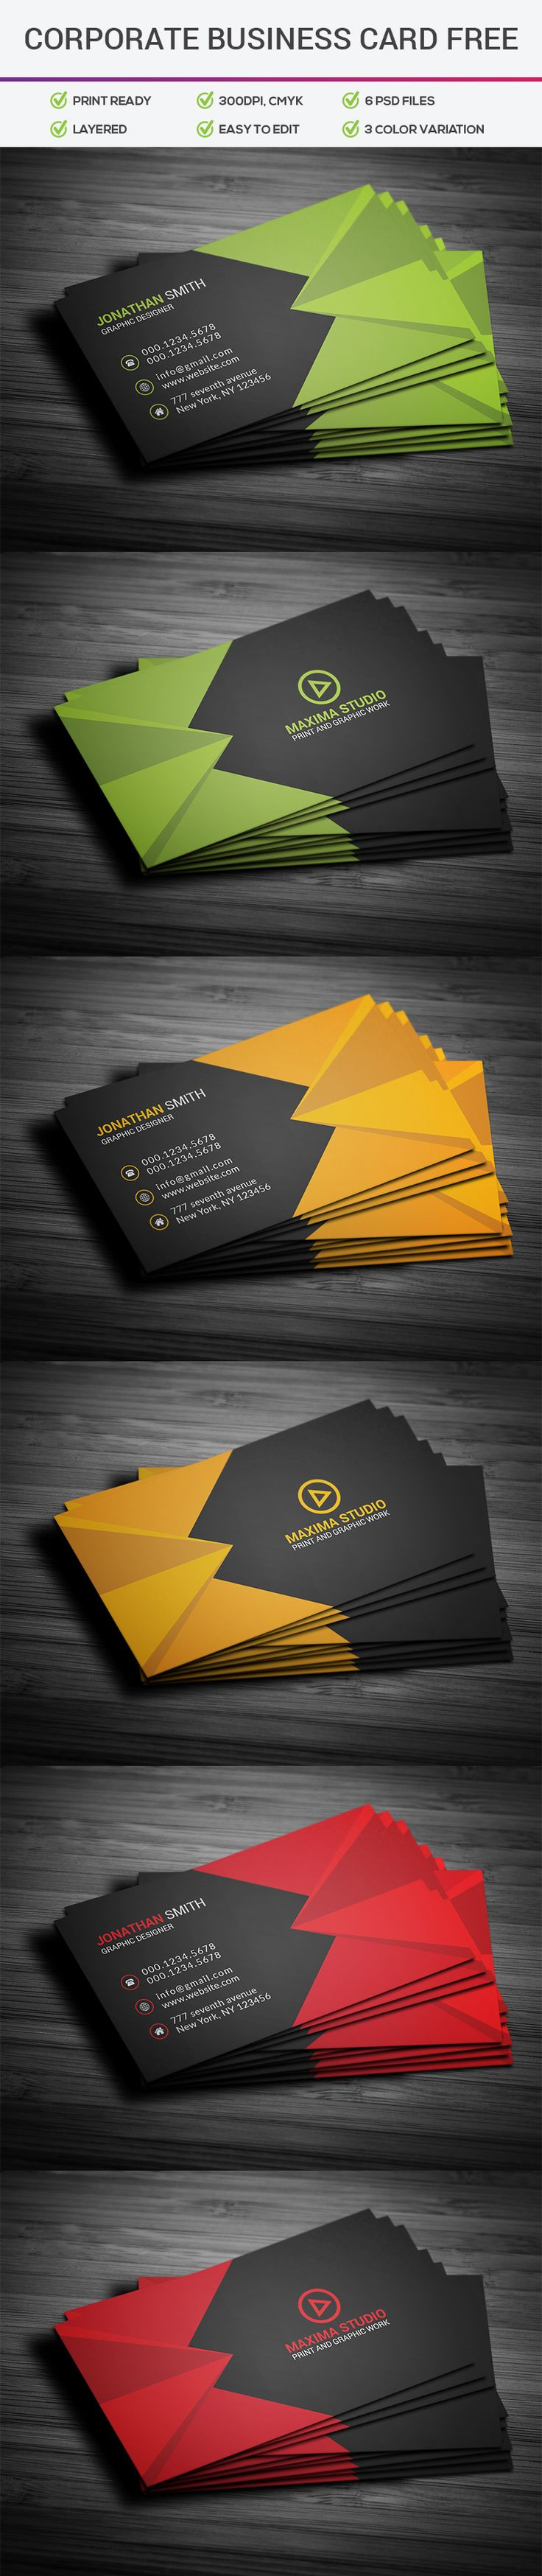 7 best business card images on pinterest